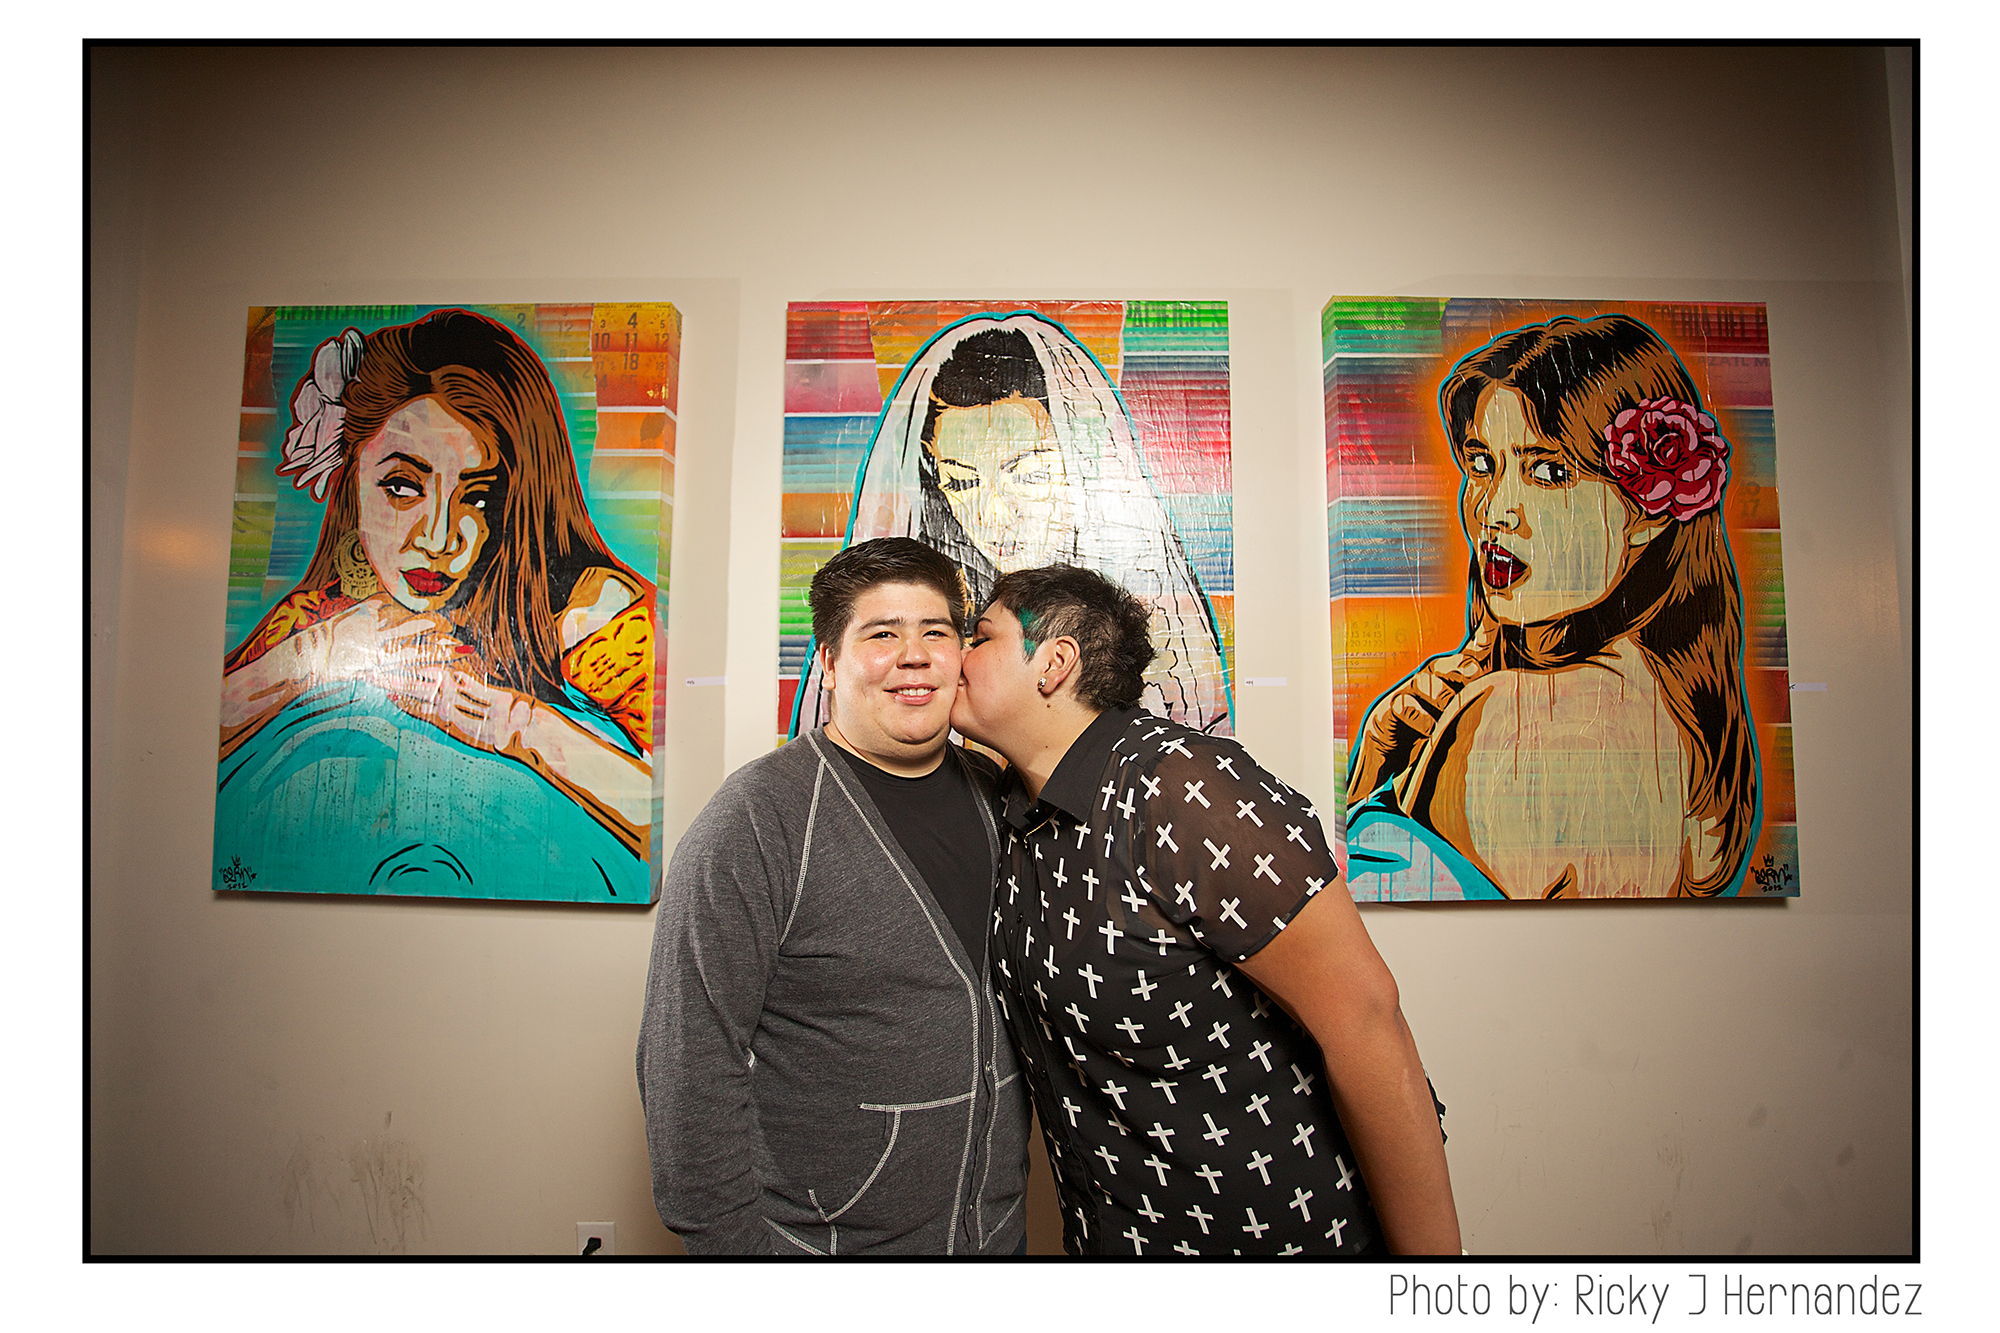 Ricky-J-Hernandez-photography-Oh-poop-I-have-Lupus-art-show-for-Delia-sweet-tooth-in-Privy-studio-Los-Angeles-CA-066